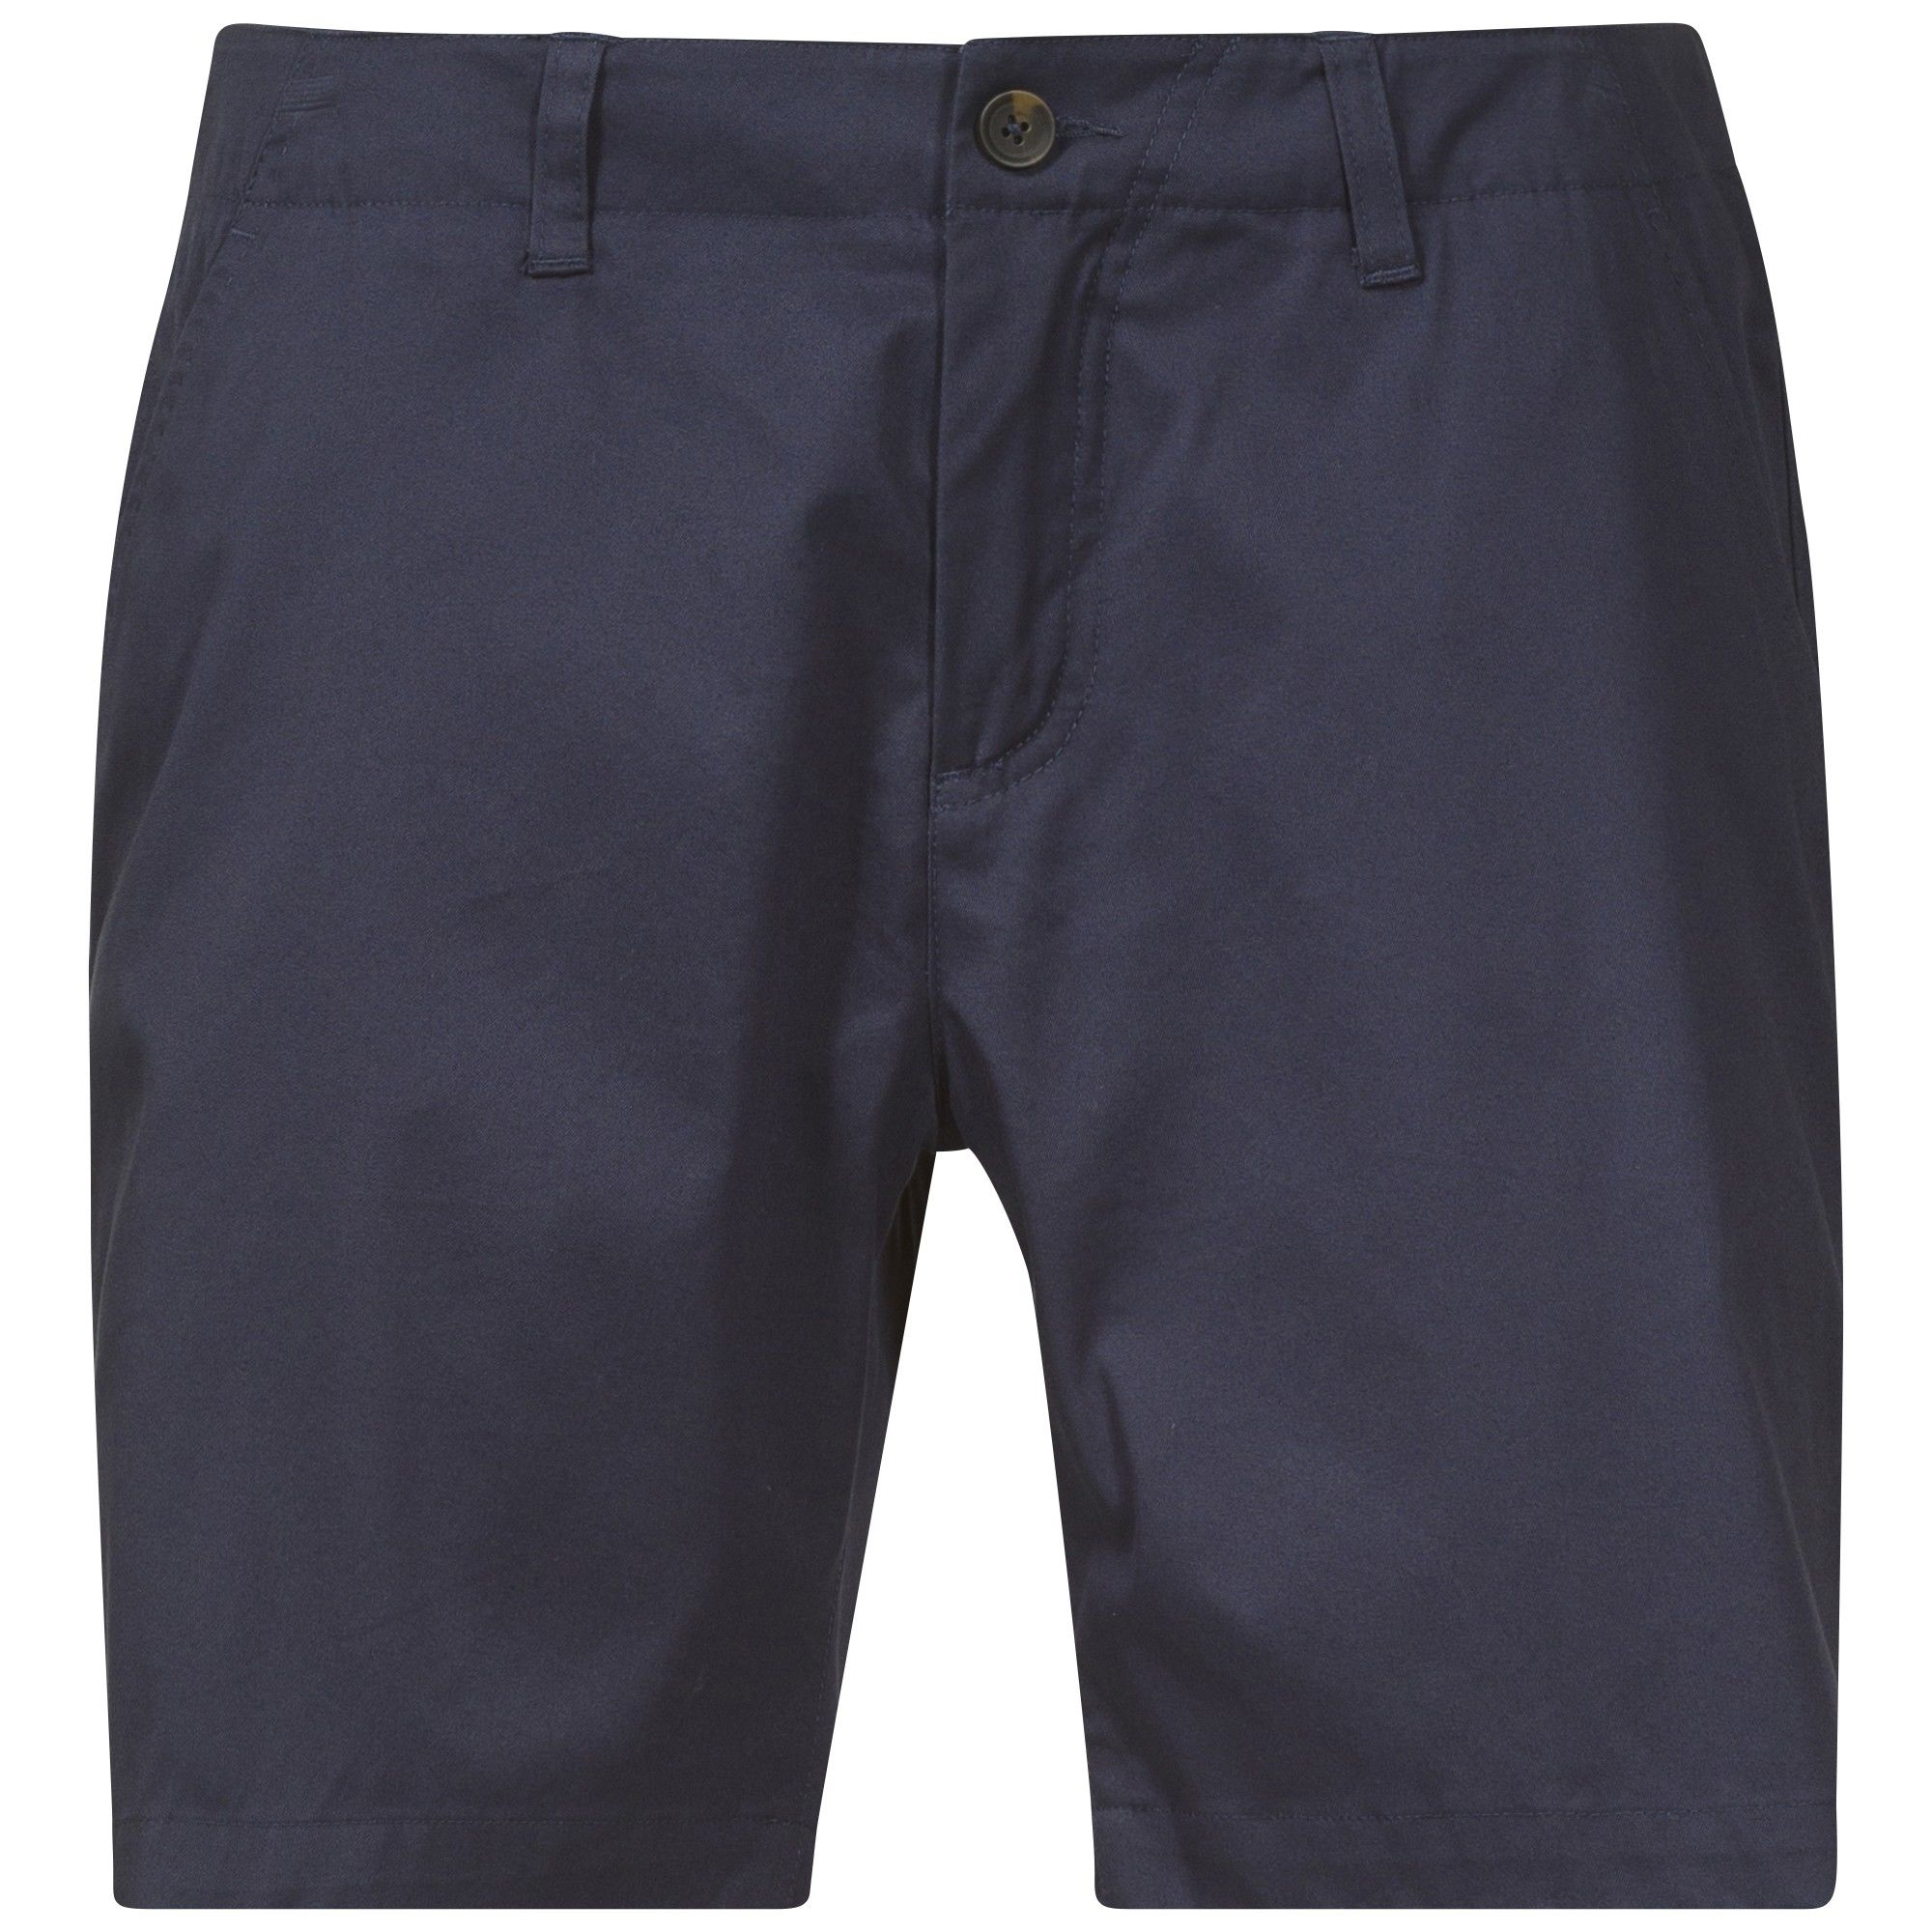 Bergans Sira Lady Shorts | Damen